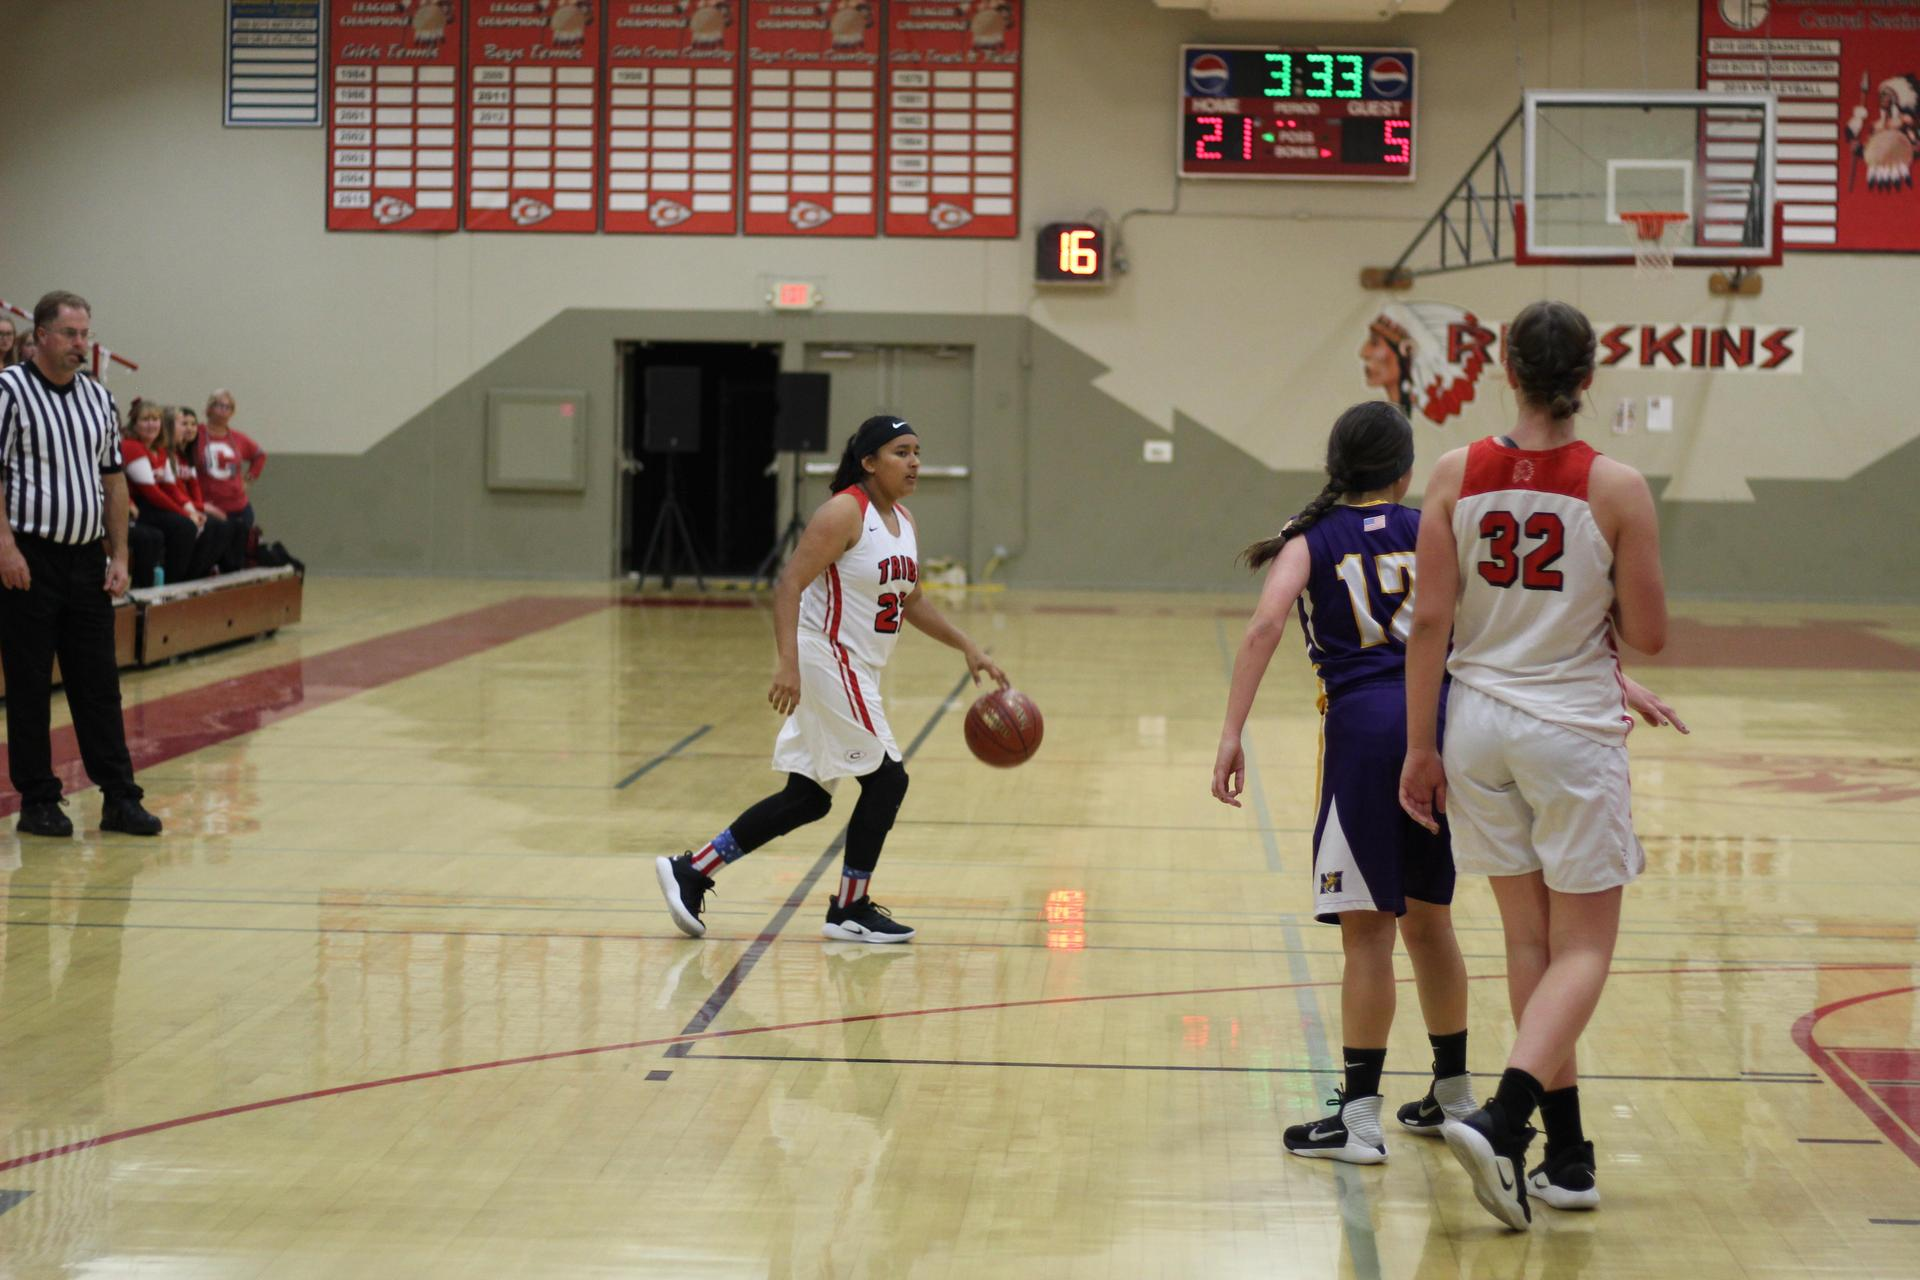 Paulina Granados with the ball